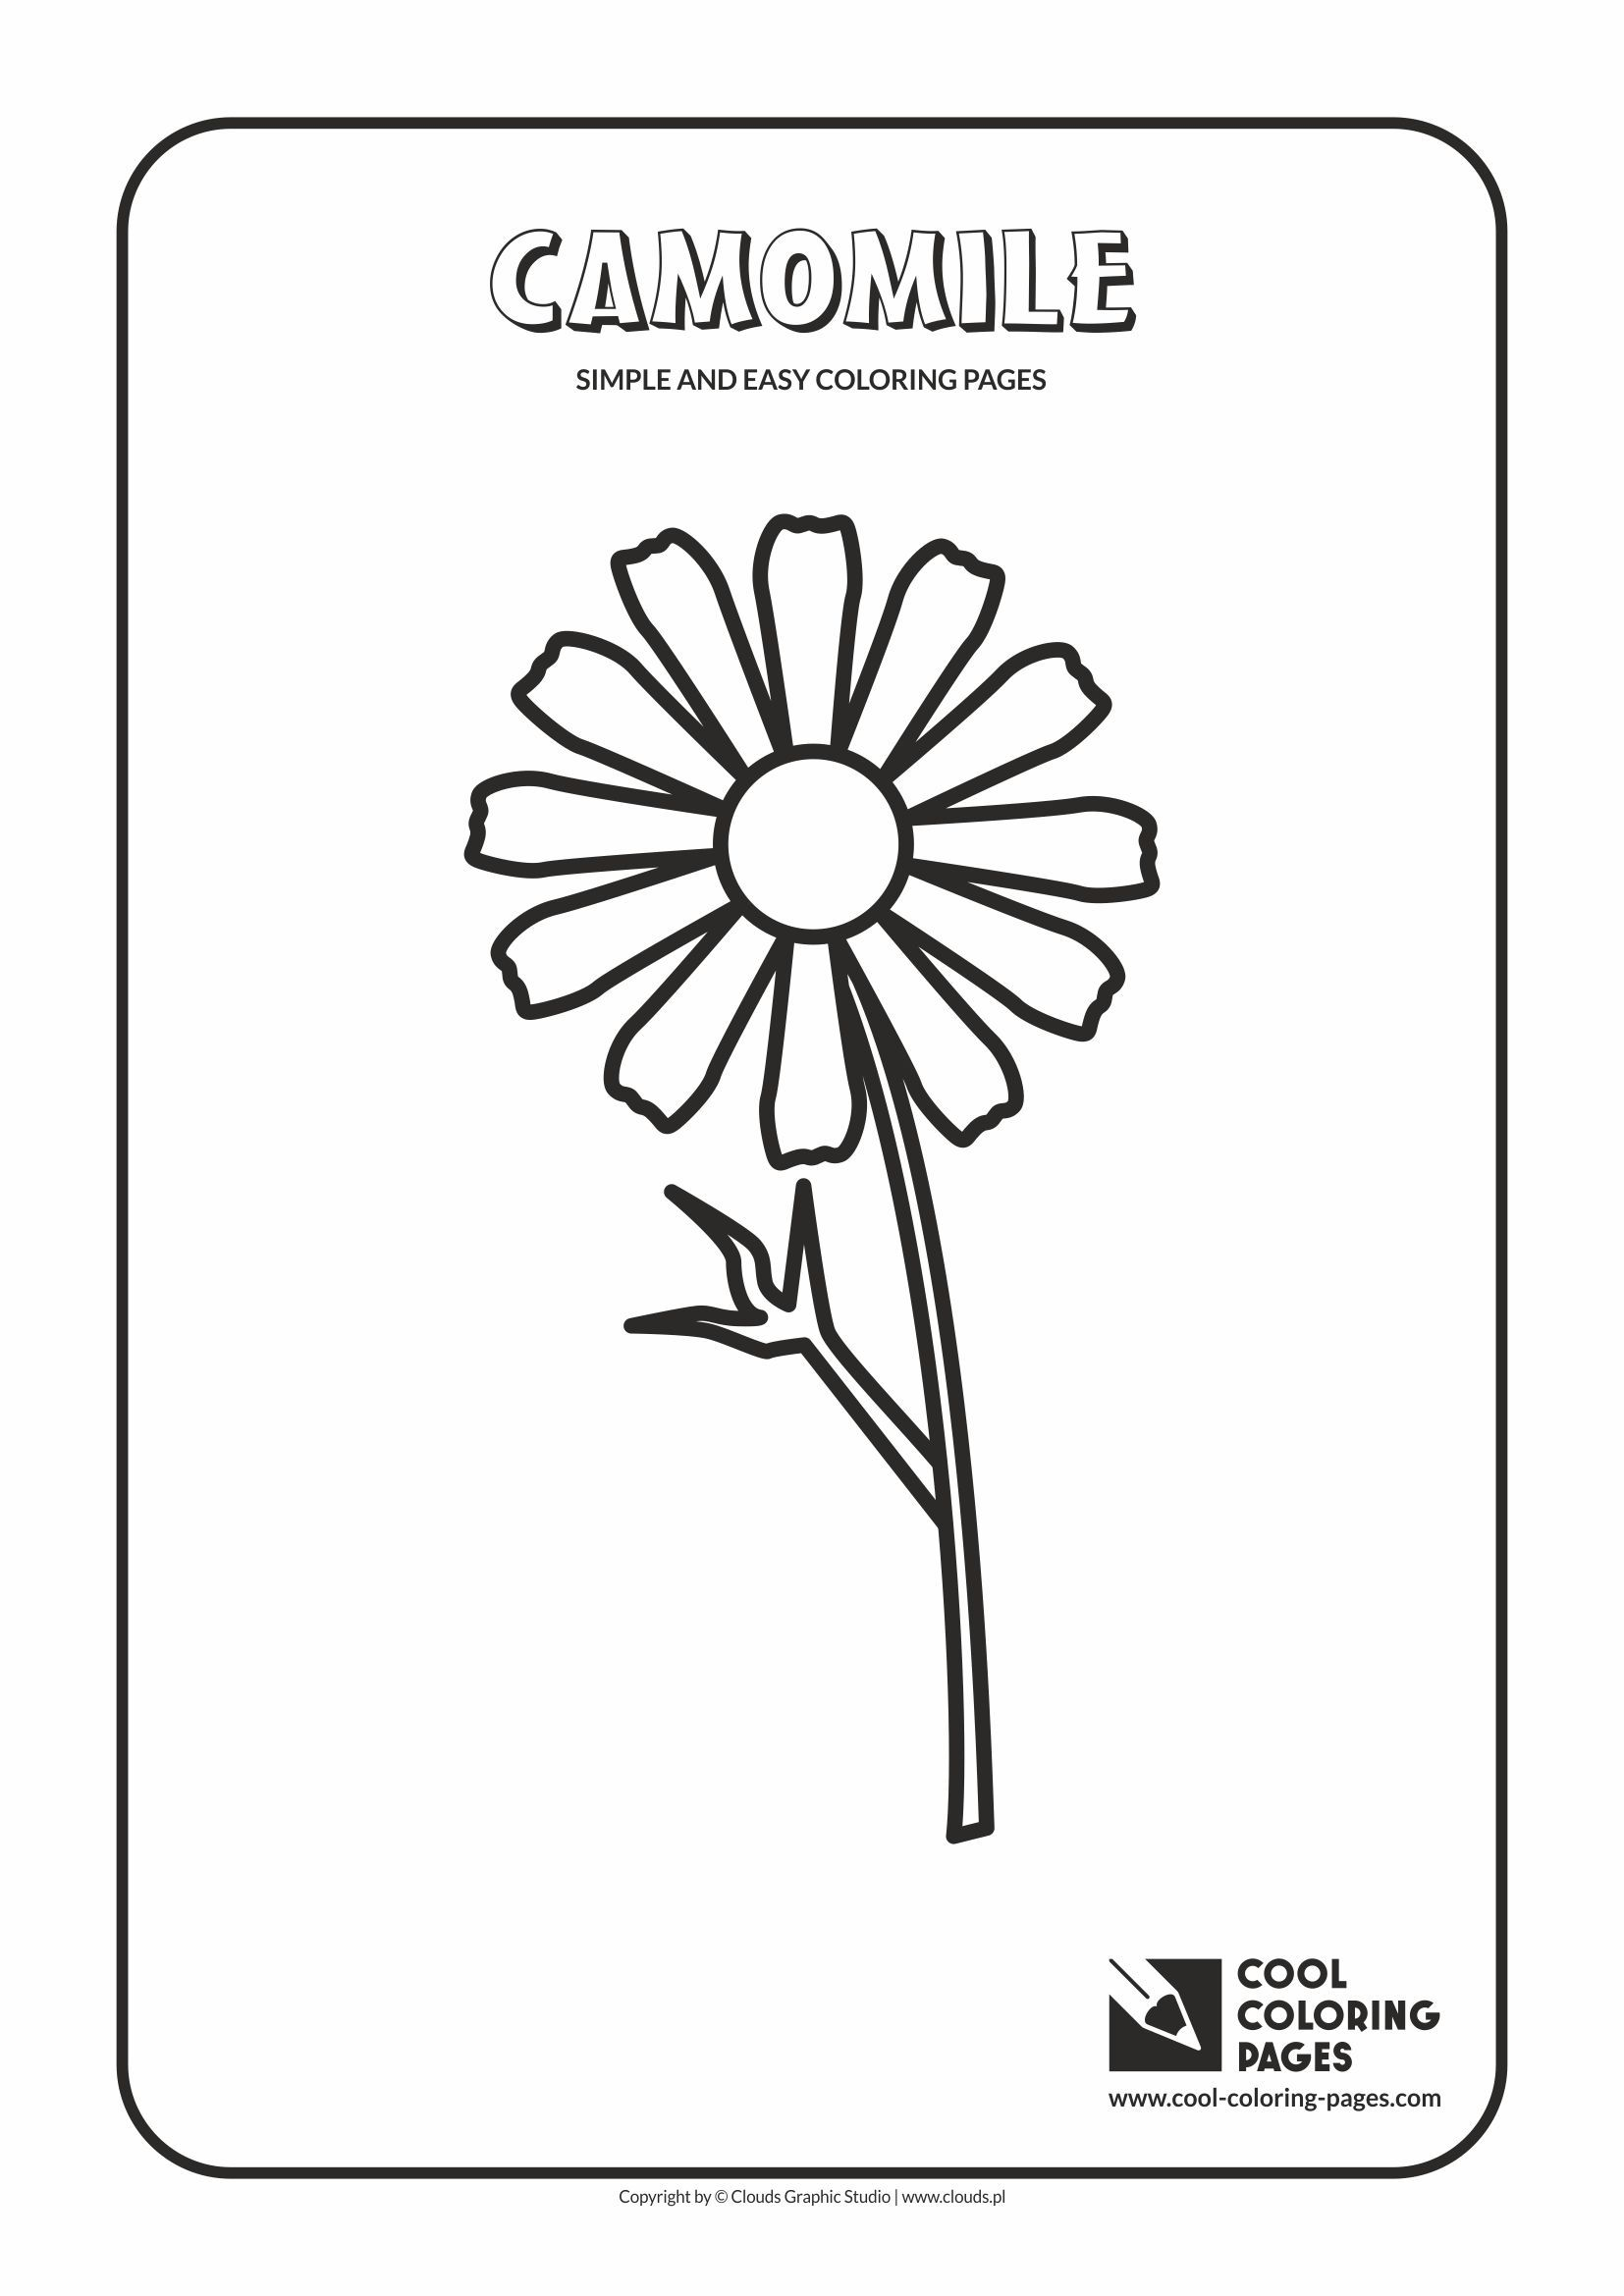 Easy coloring pages for toddlers - Simple And Easy Coloring Pages For Toddlers Camomile